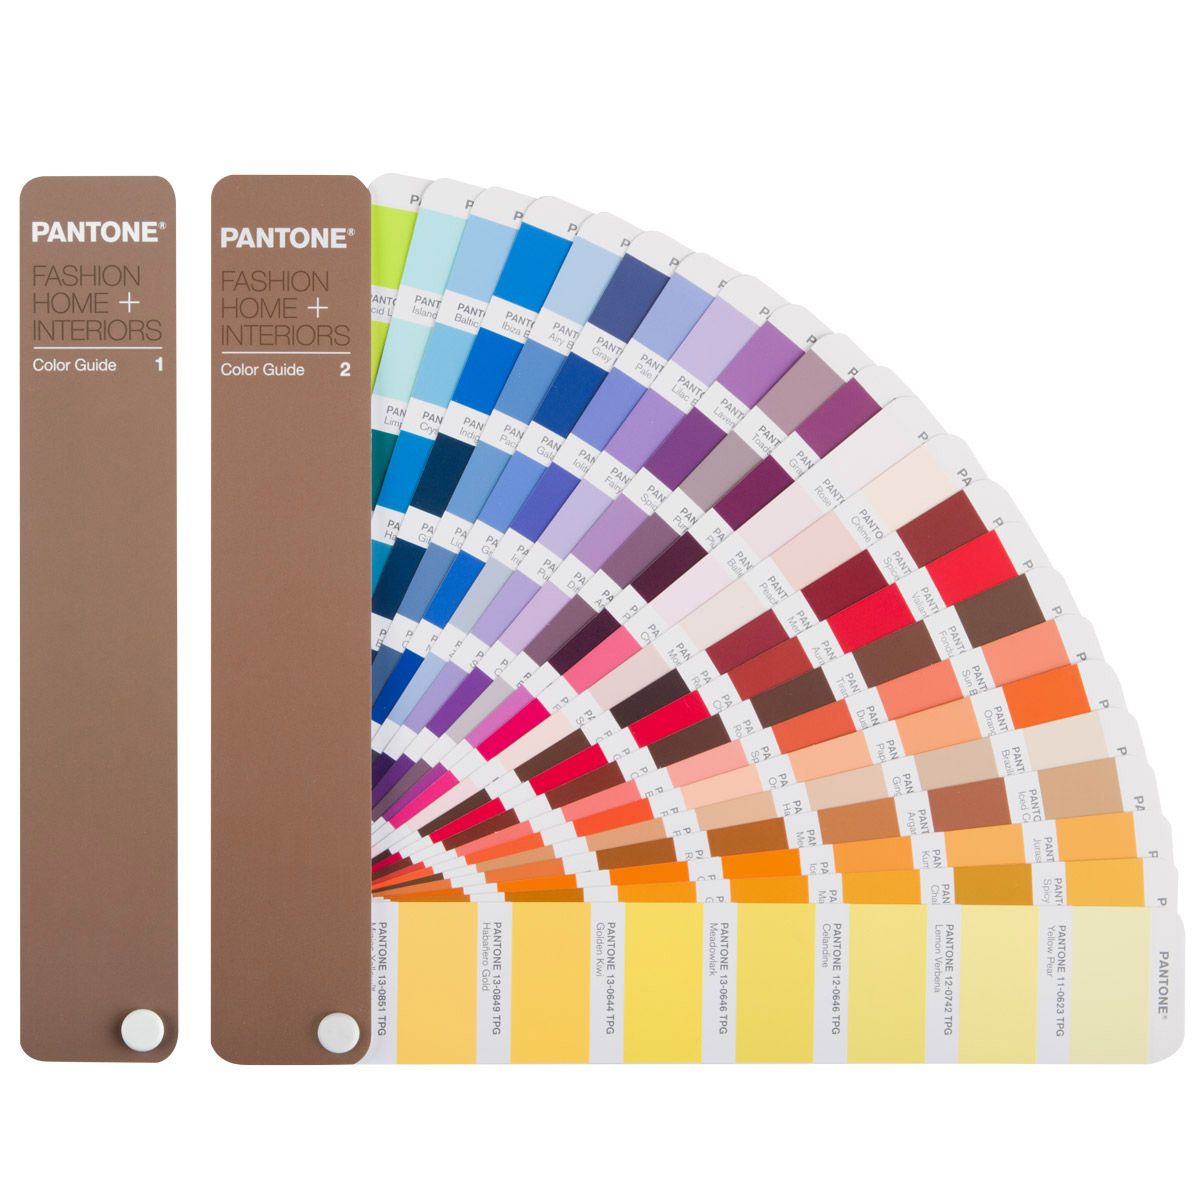 Pantone Fhip110N Color Guide